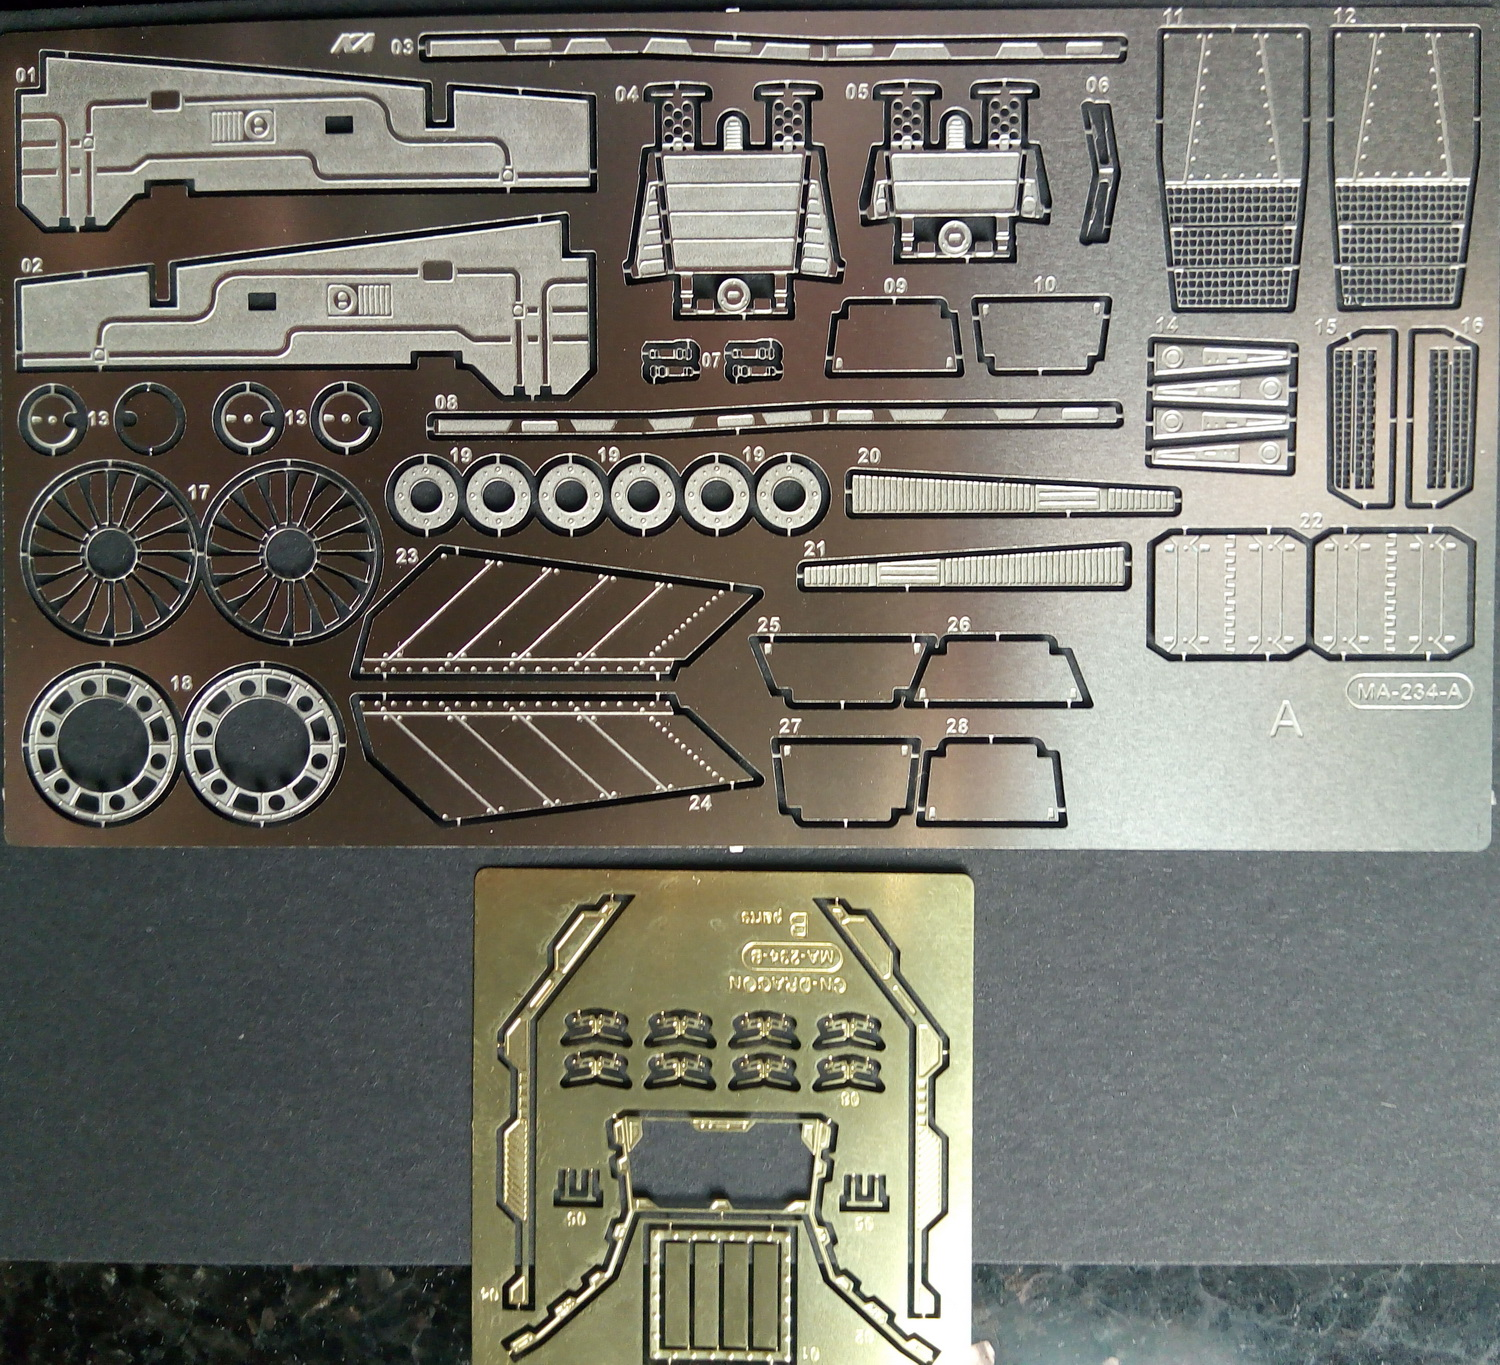 1: 48 yf-19 hyperspace fortress with Hasegawa fighter model modification etch